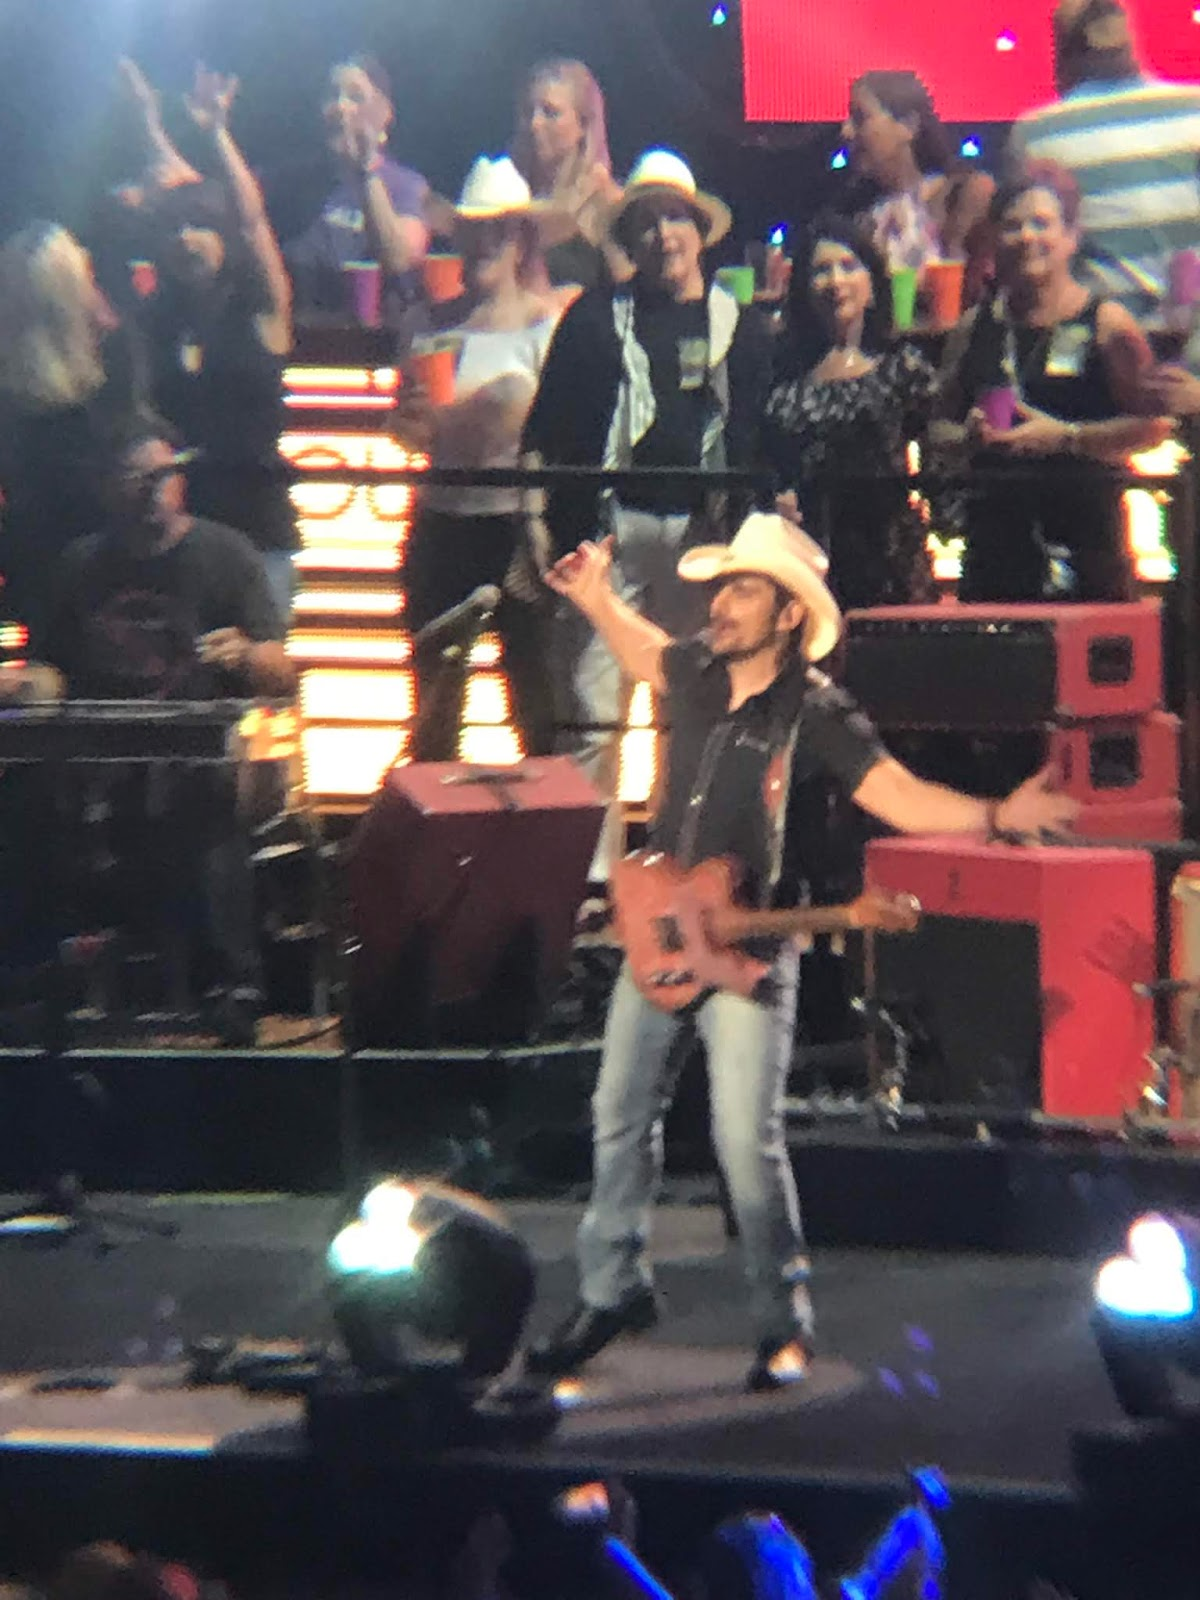 Brad Paisley, Wife Victims Of Online Cancer Hoax - HuffPost